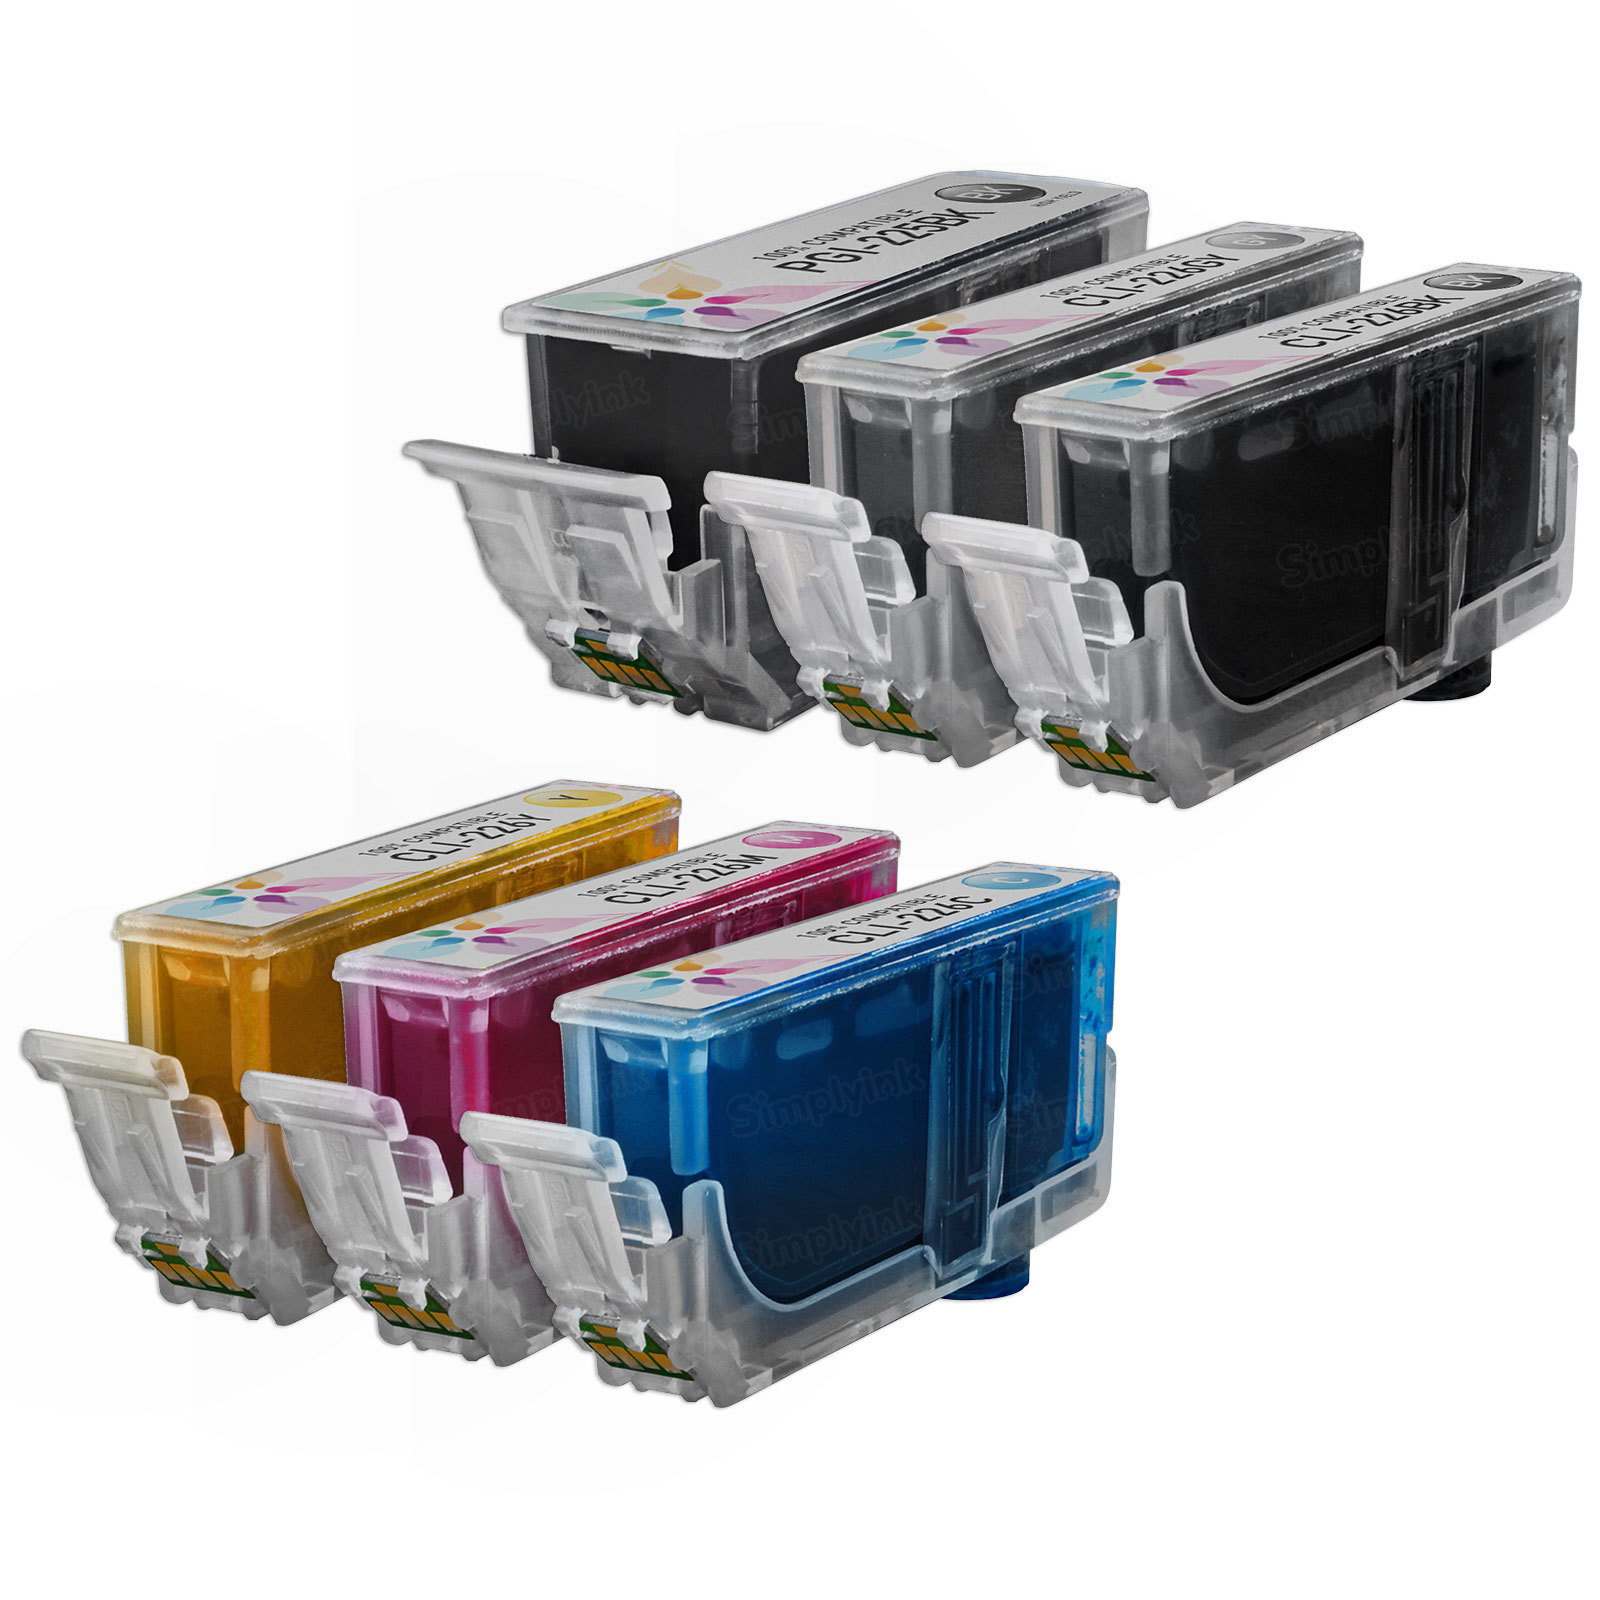 Canon PGI-225 & CLI-226: 1 Pigment Black PGI-225 & 1 Each of CLI-226 Bk, C, M, Y, G (Compatible Ink)